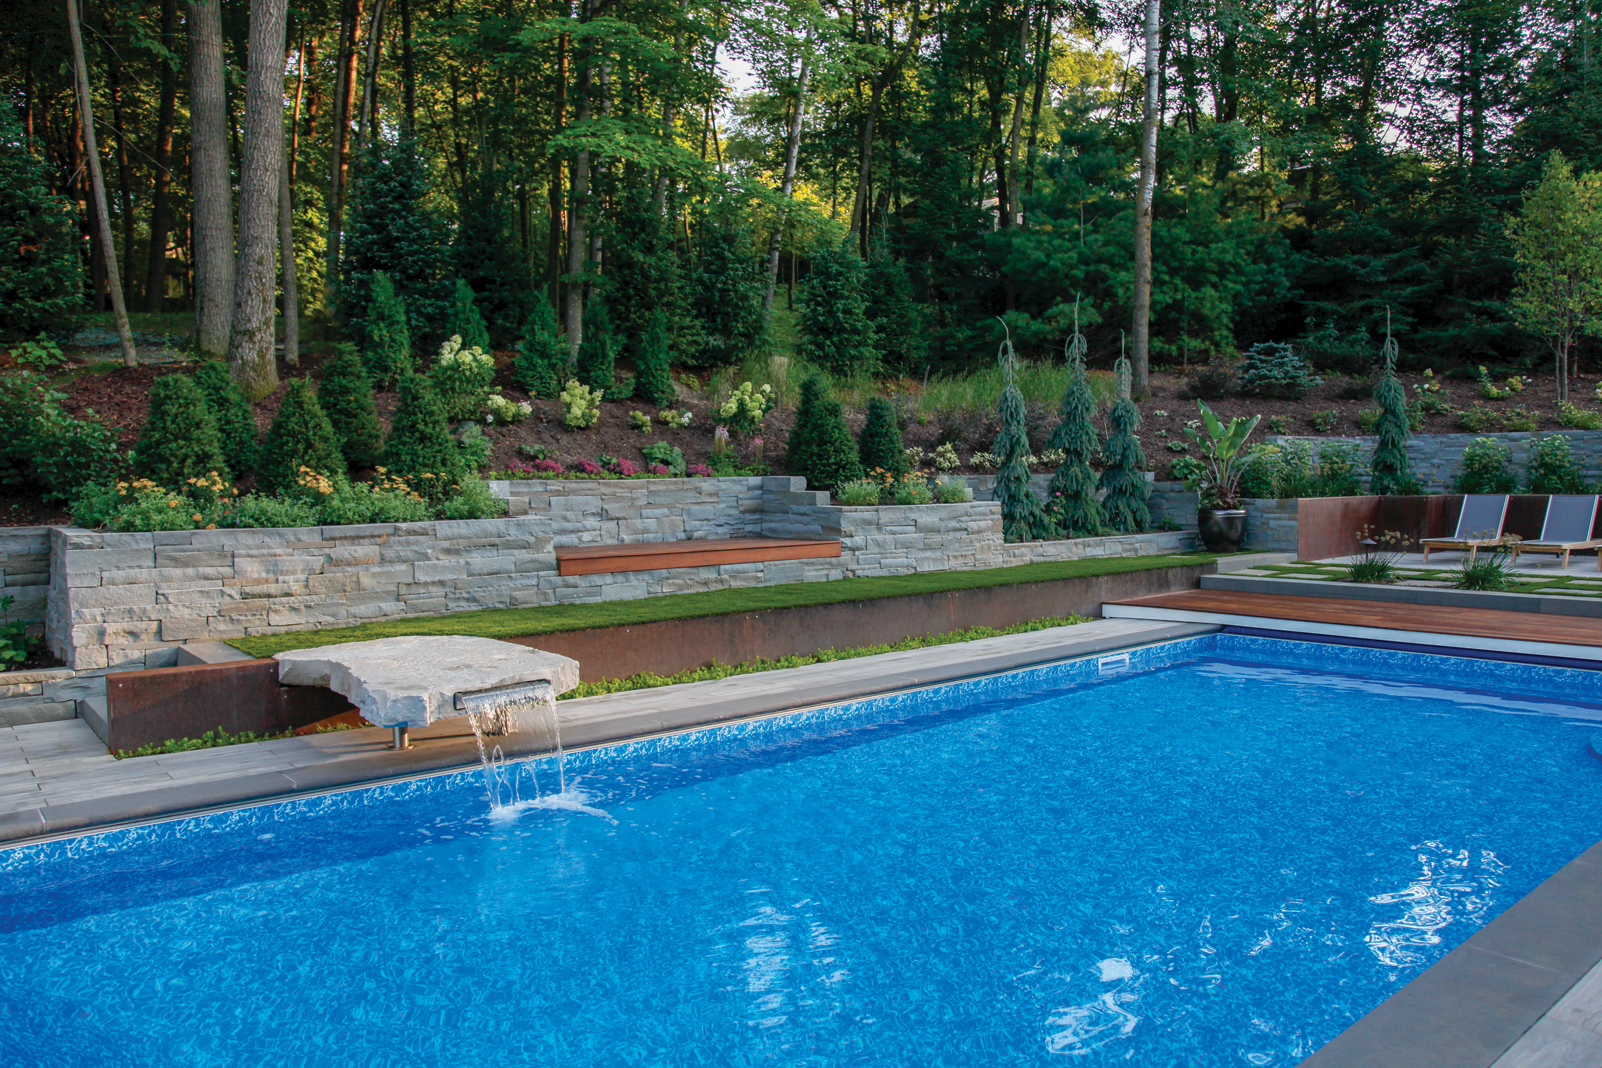 A bluestone slab complete with a miniature waterfall feature doubles as a jump-off point for the kids, adding a fun element to the pool area without sacrificing aesthetic.